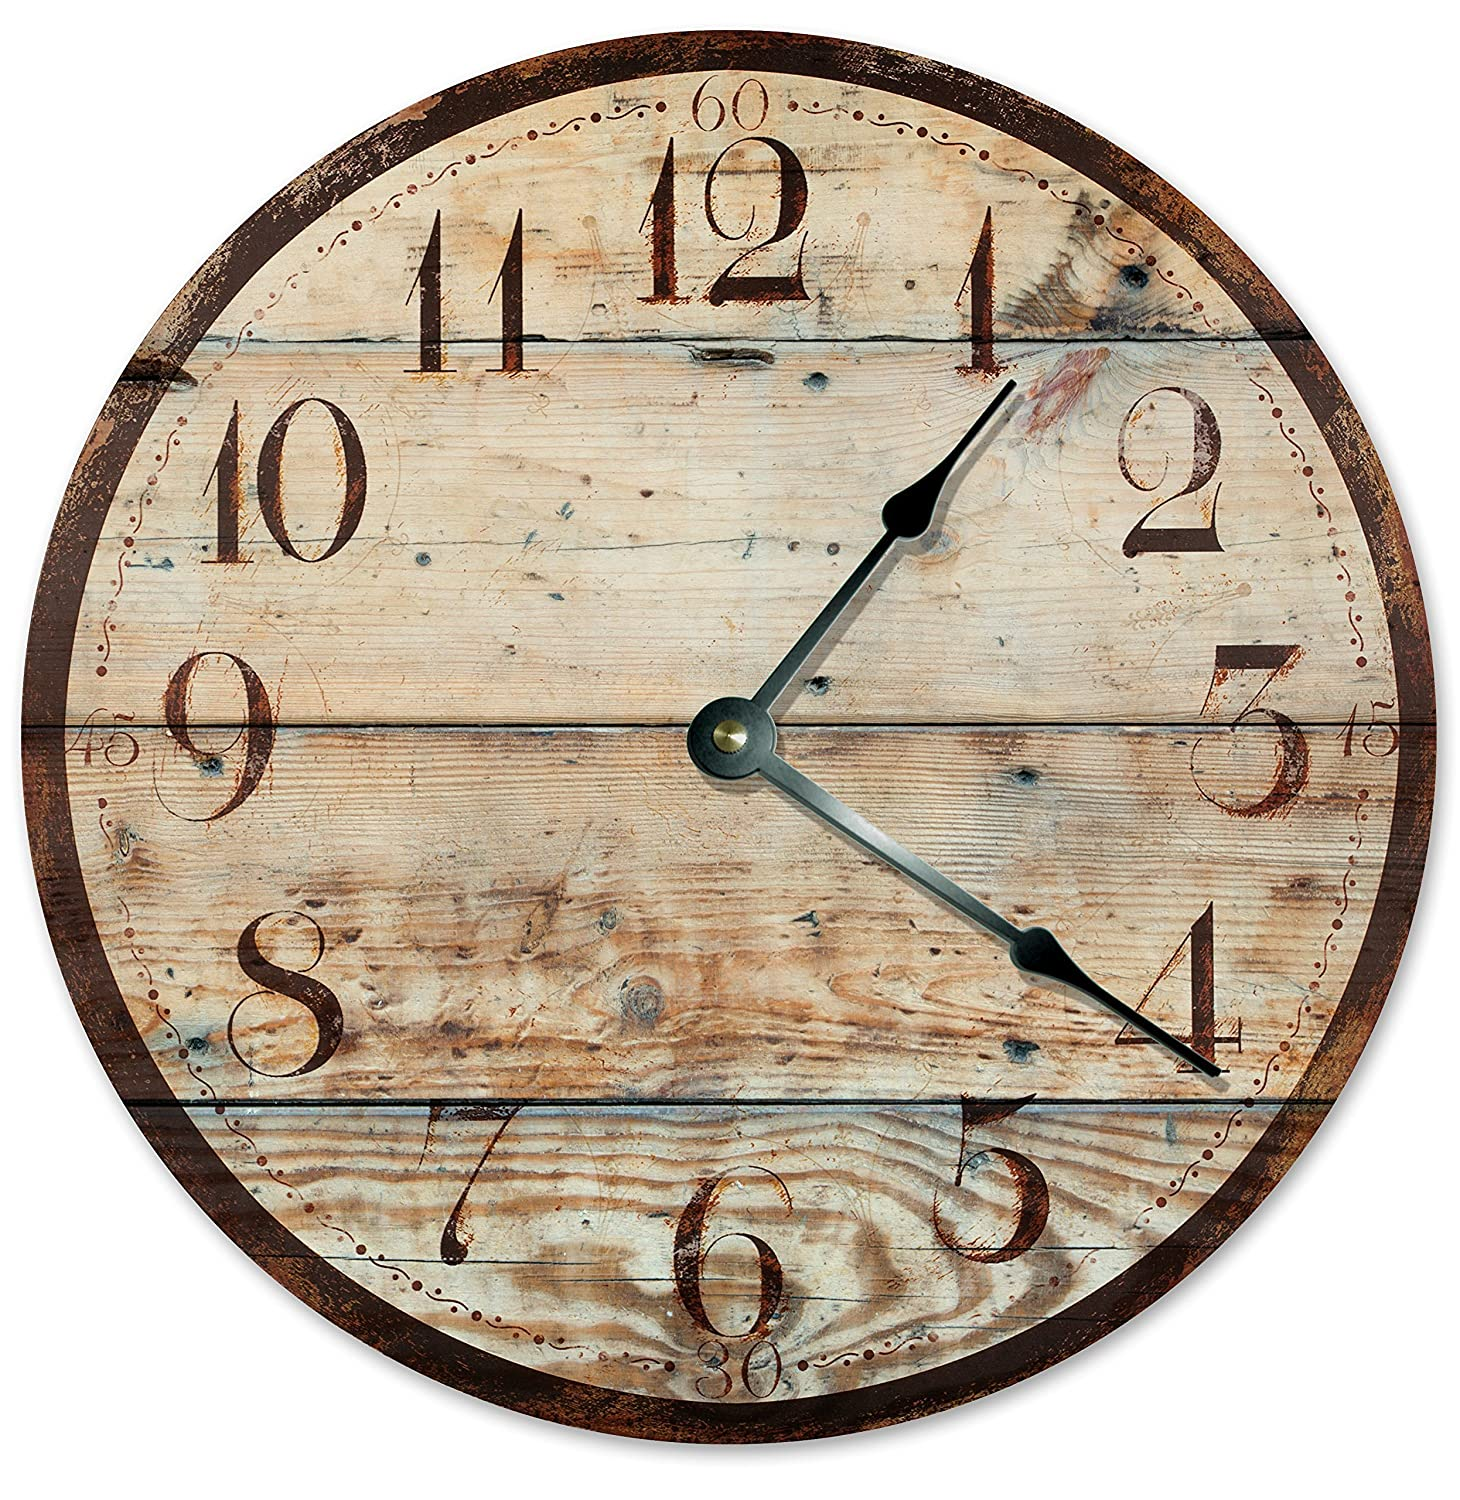 Amazon rustic wood clock large 105 wall clock decorative amazon rustic wood clock large 105 wall clock decorative round novelty clock printed wood image beach wood clock handmade amipublicfo Gallery